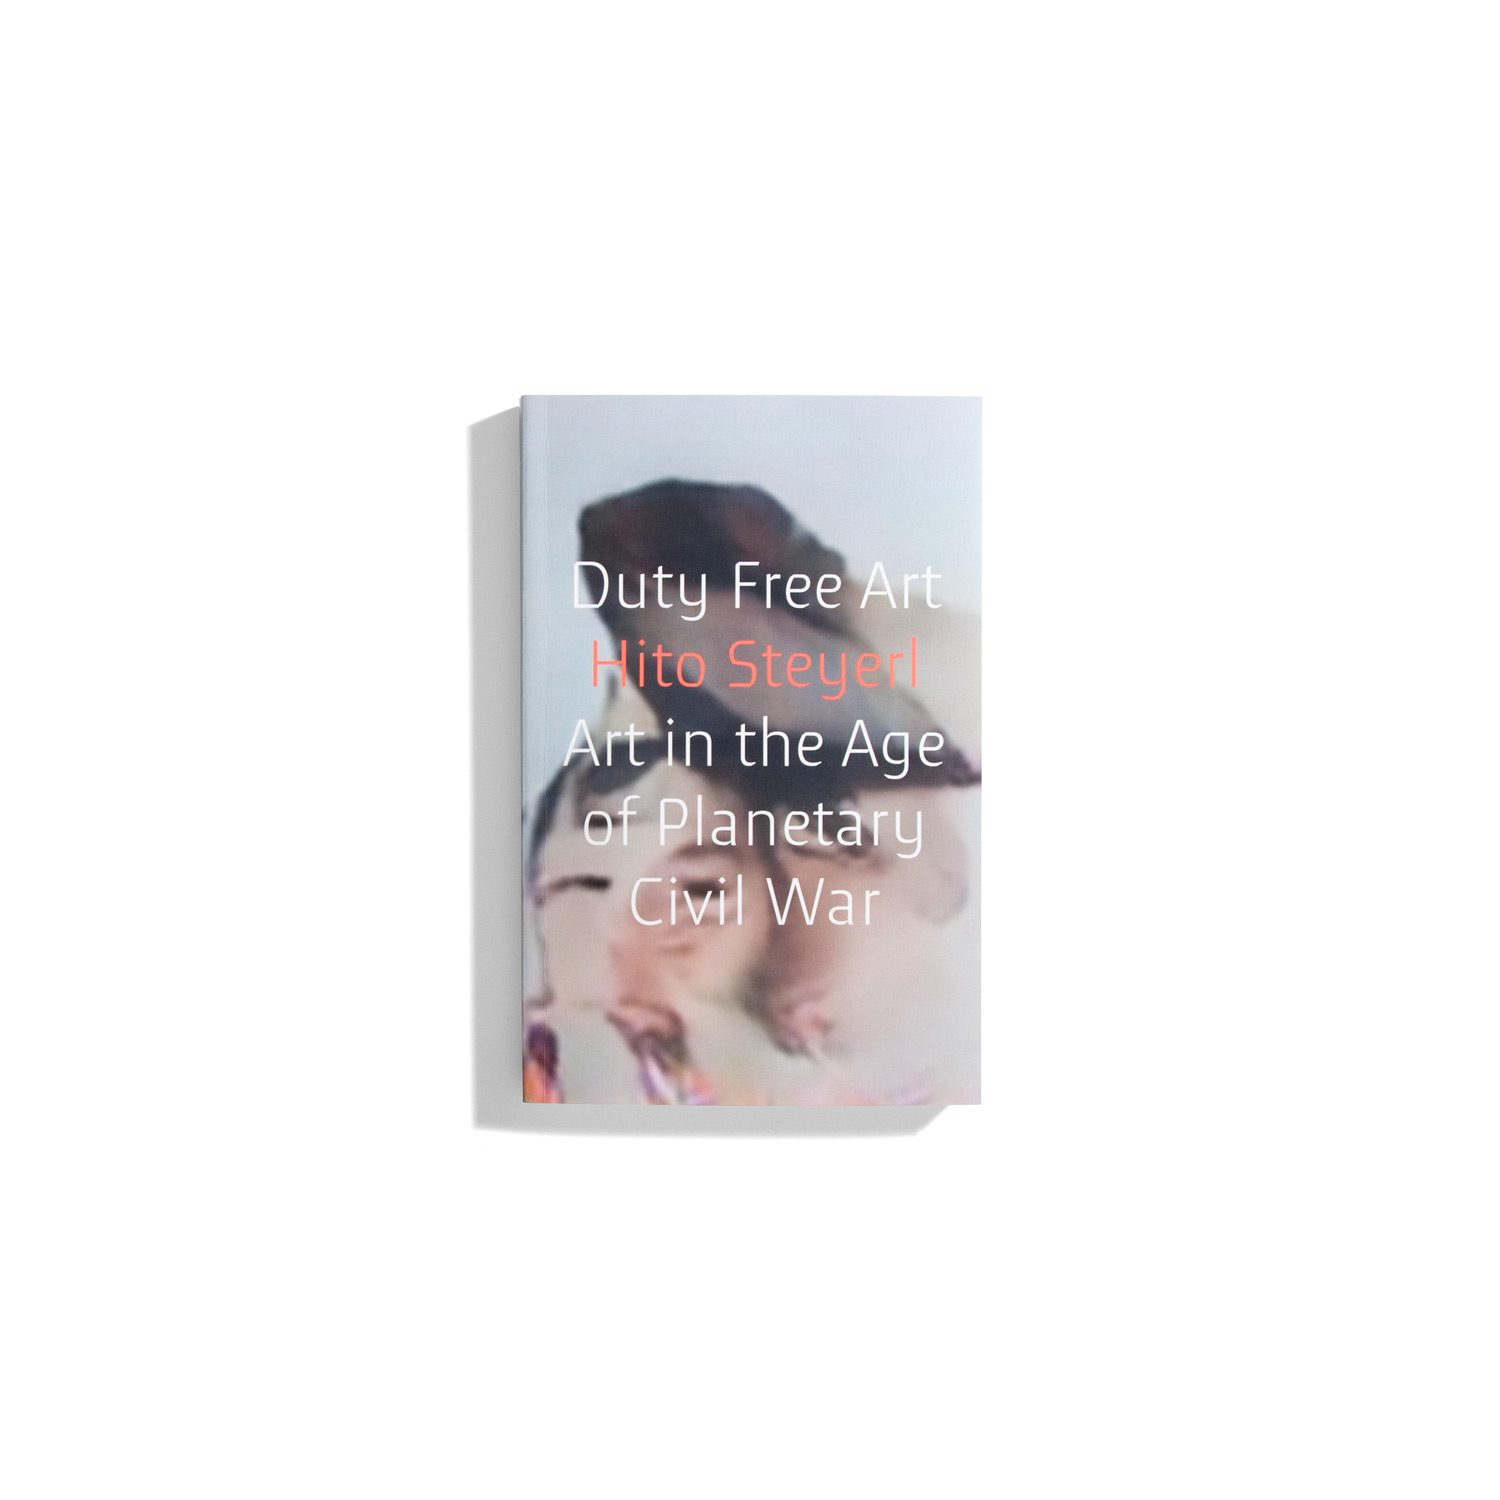 Duty Free Art - Art in the Age of Planetary Civil War -  Hito Steyerl